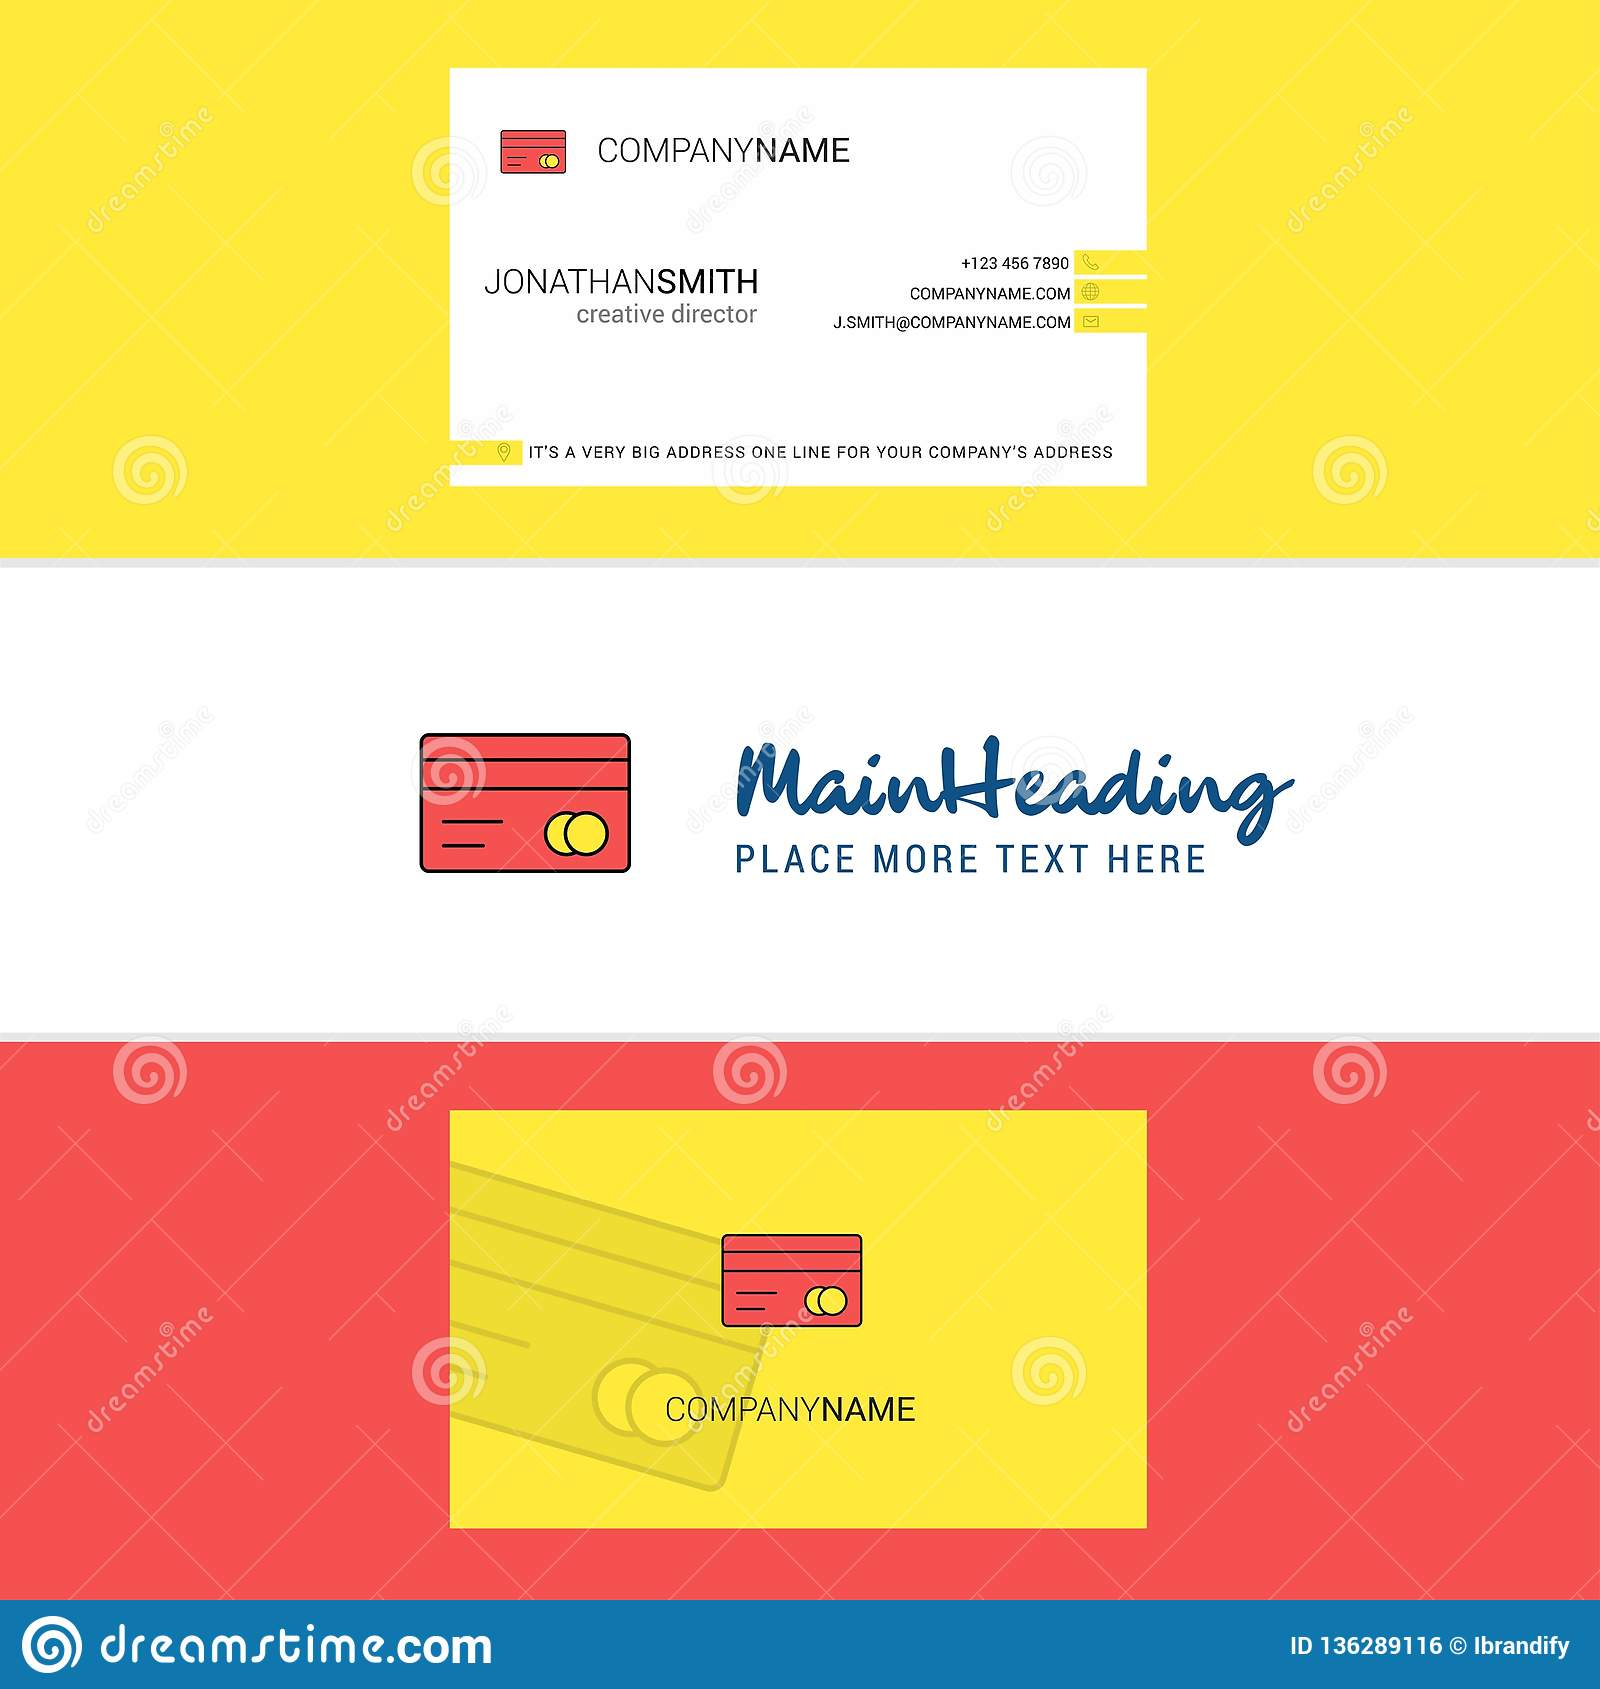 Beautiful Credit Card Logo And Business Card. Vertical Design